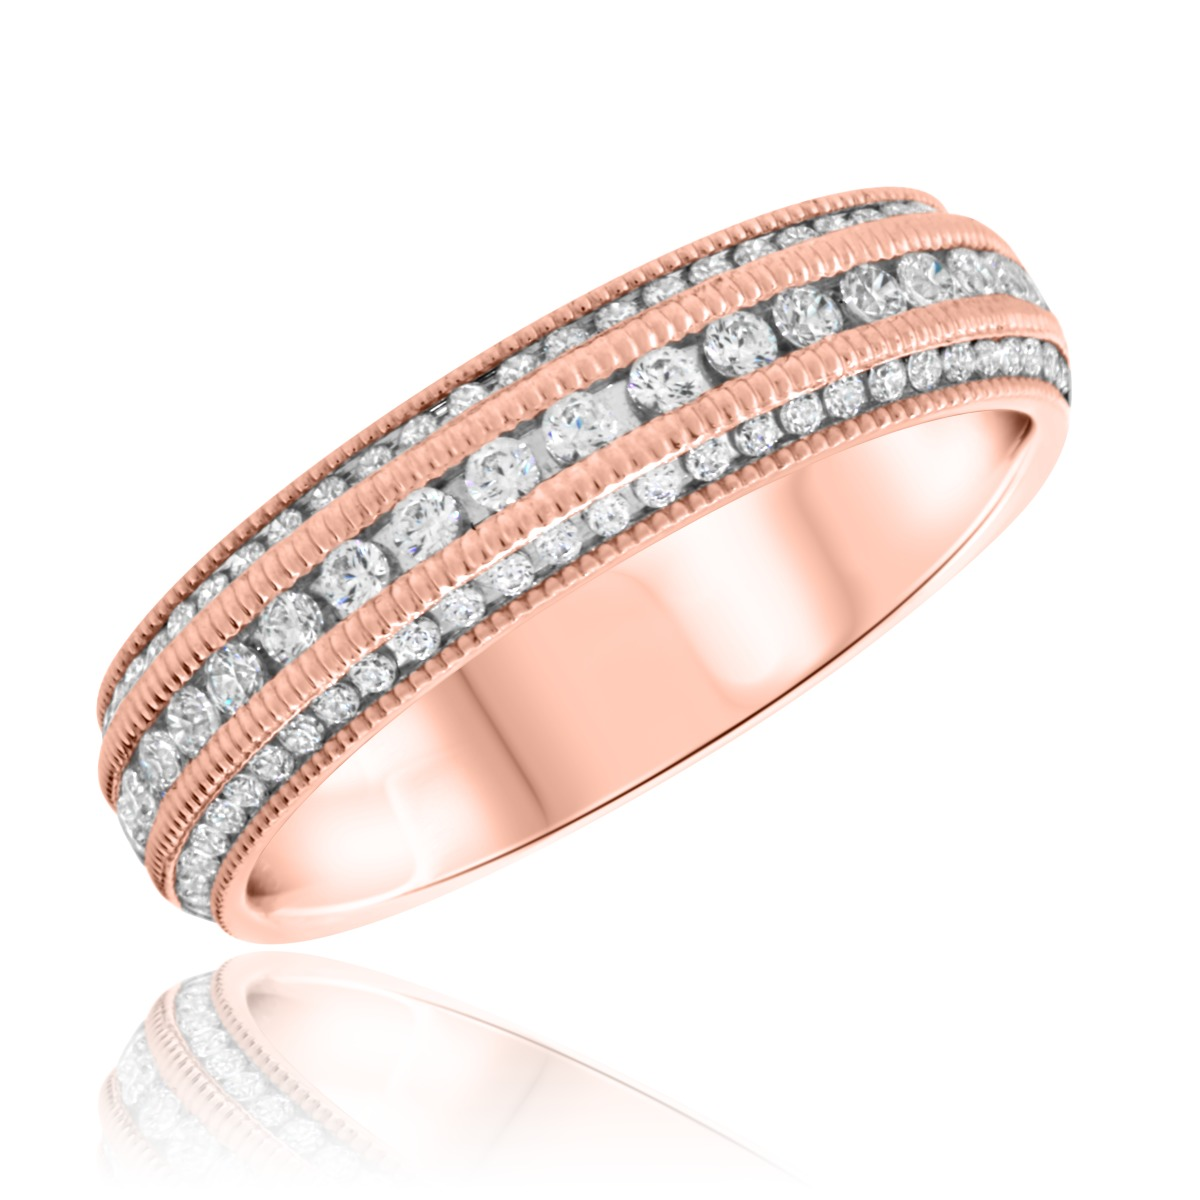 1/2 CT. T.W. Diamond Ladies Wedding Band  14K Rose Gold